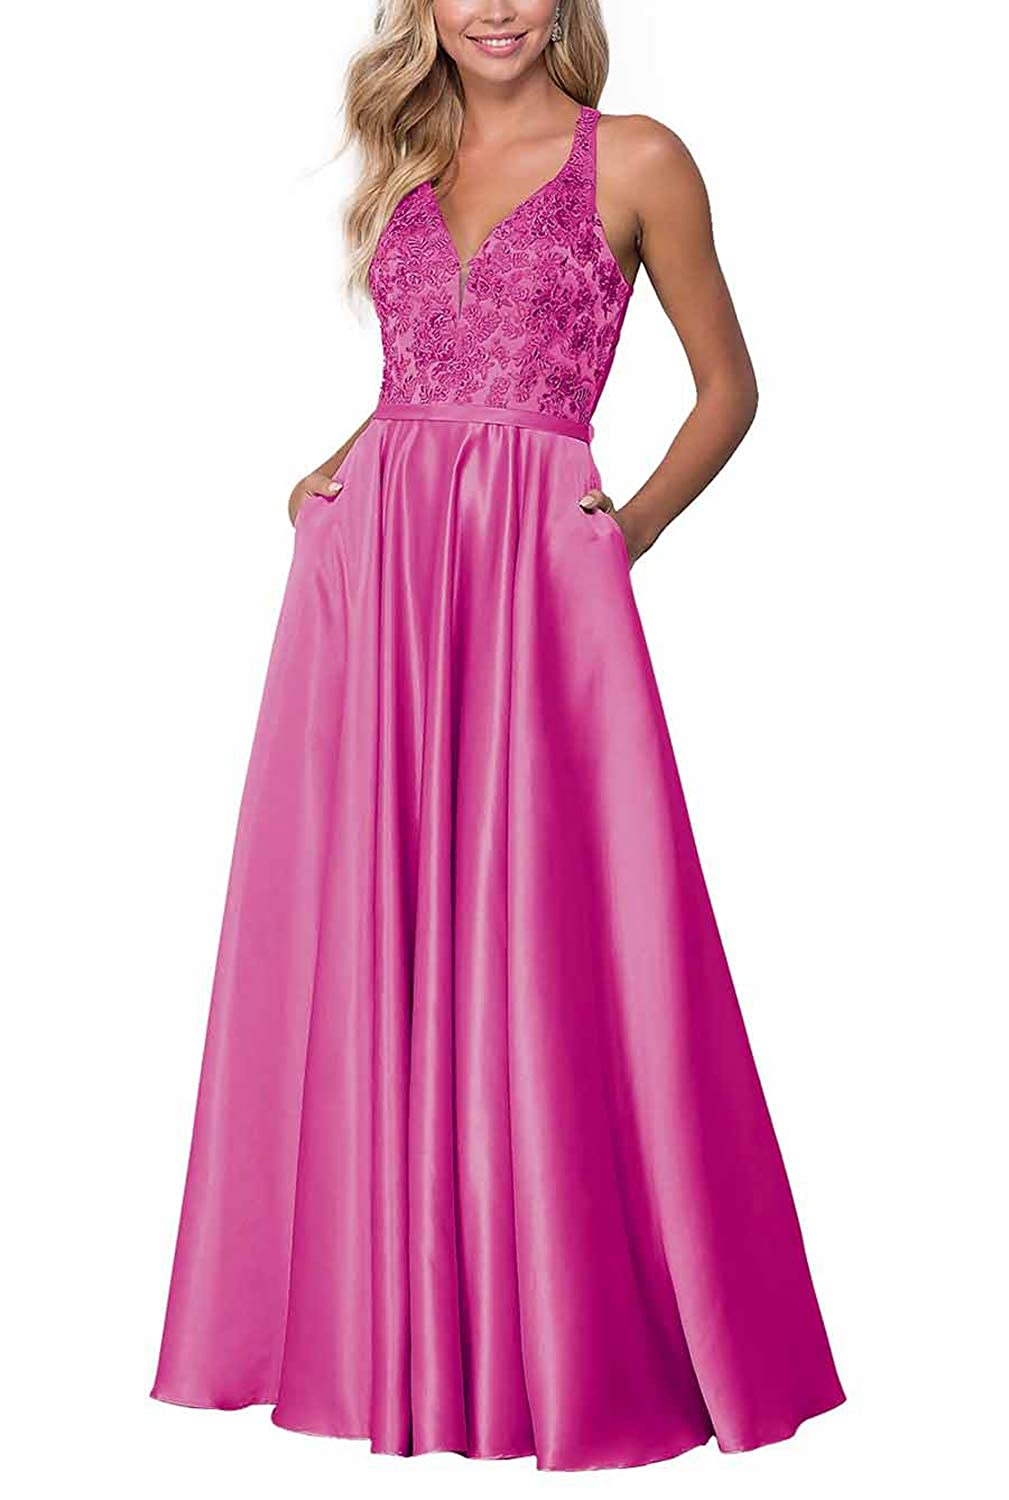 Hot Pink PrettyTatum Long VNeck Prom Dresses for Women Evening Gowns with Embroidered Bodice Skirt